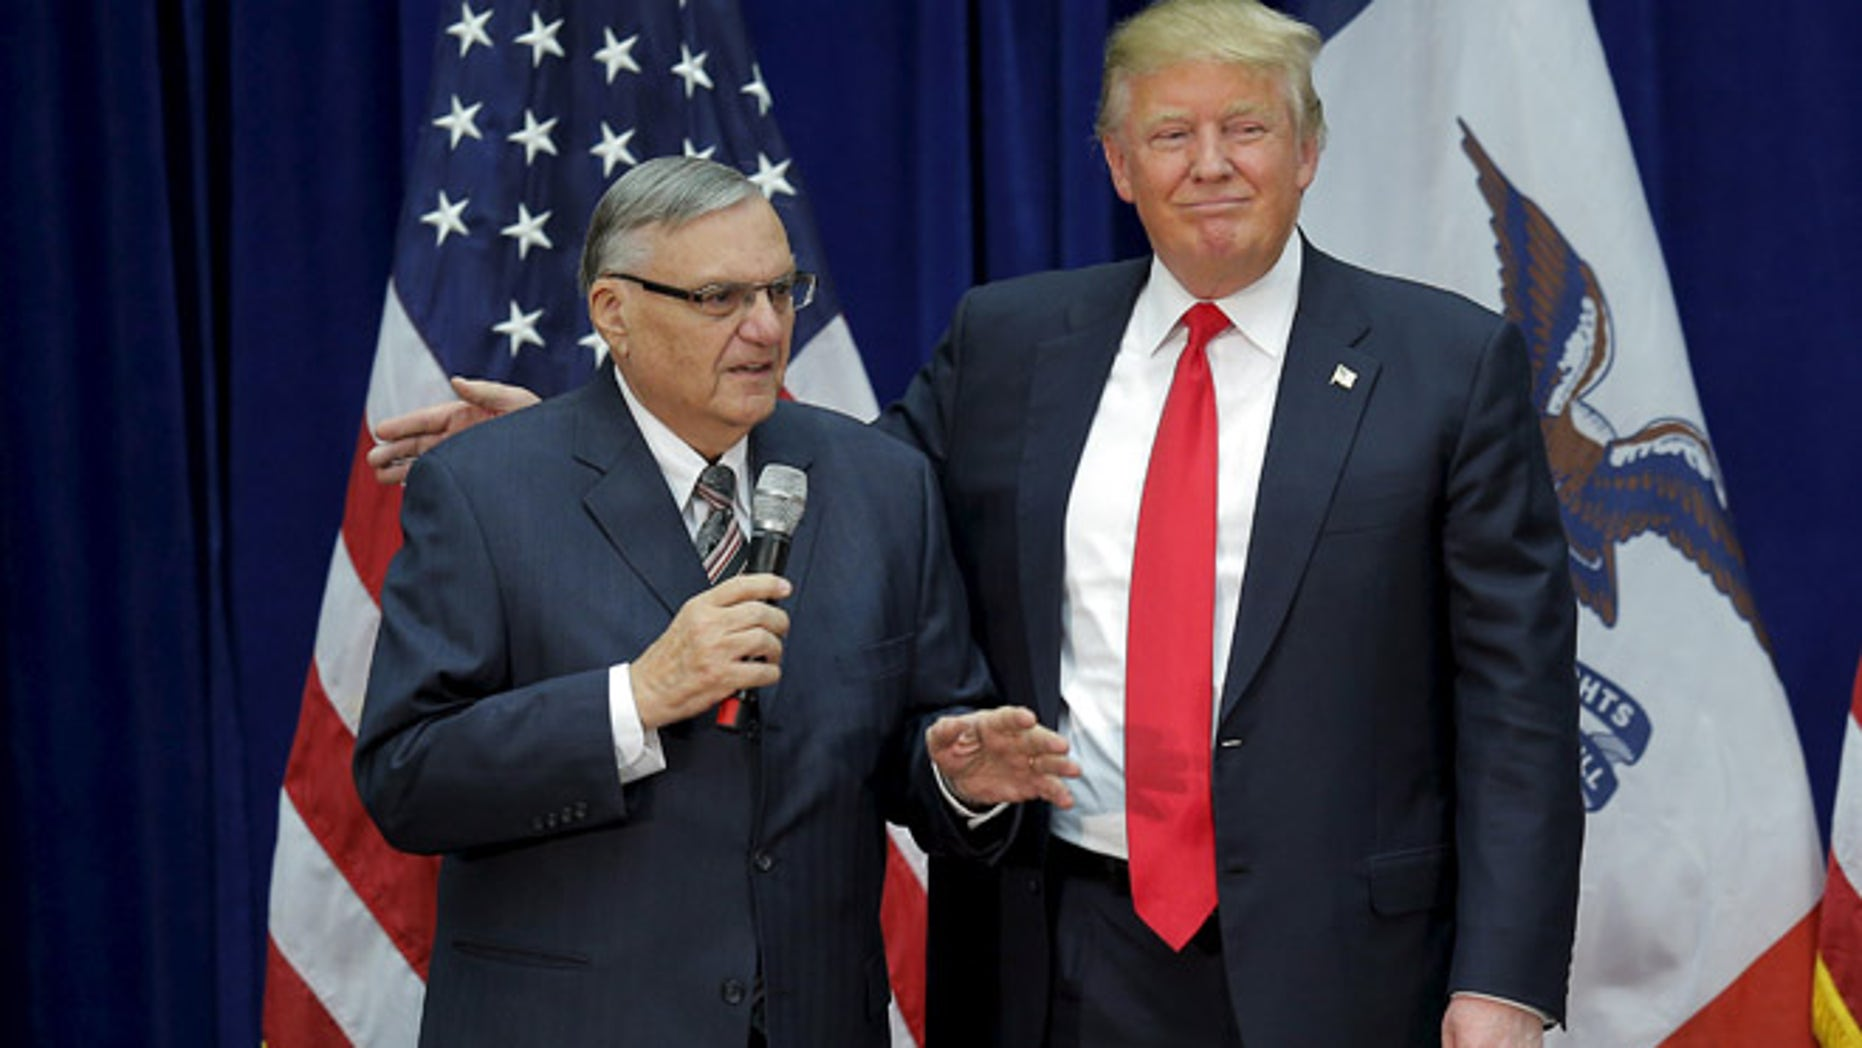 In this Jan. 26, 2016 photo, Donald Trump is joined onstage by then-Maricopa County Sheriff Joe Arpaio at a campaign rally in Marshalltown, Iowa.